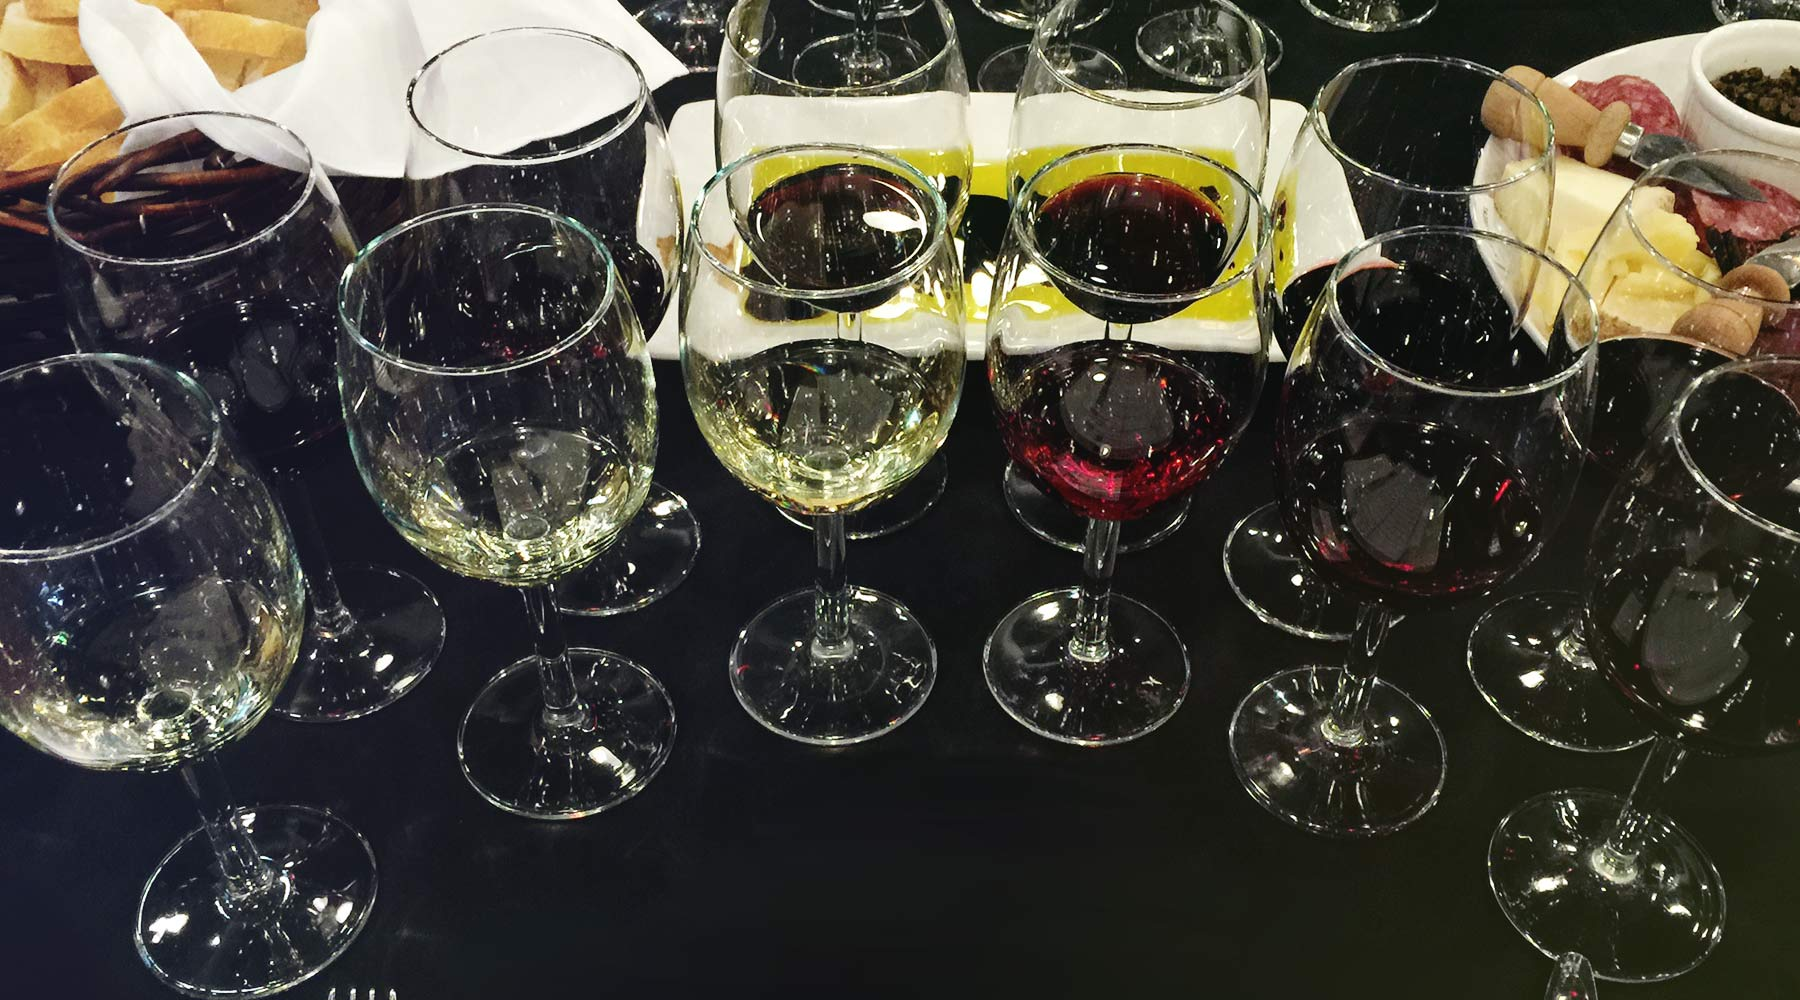 Blend Your Own Merlot Seminar | Just Wine